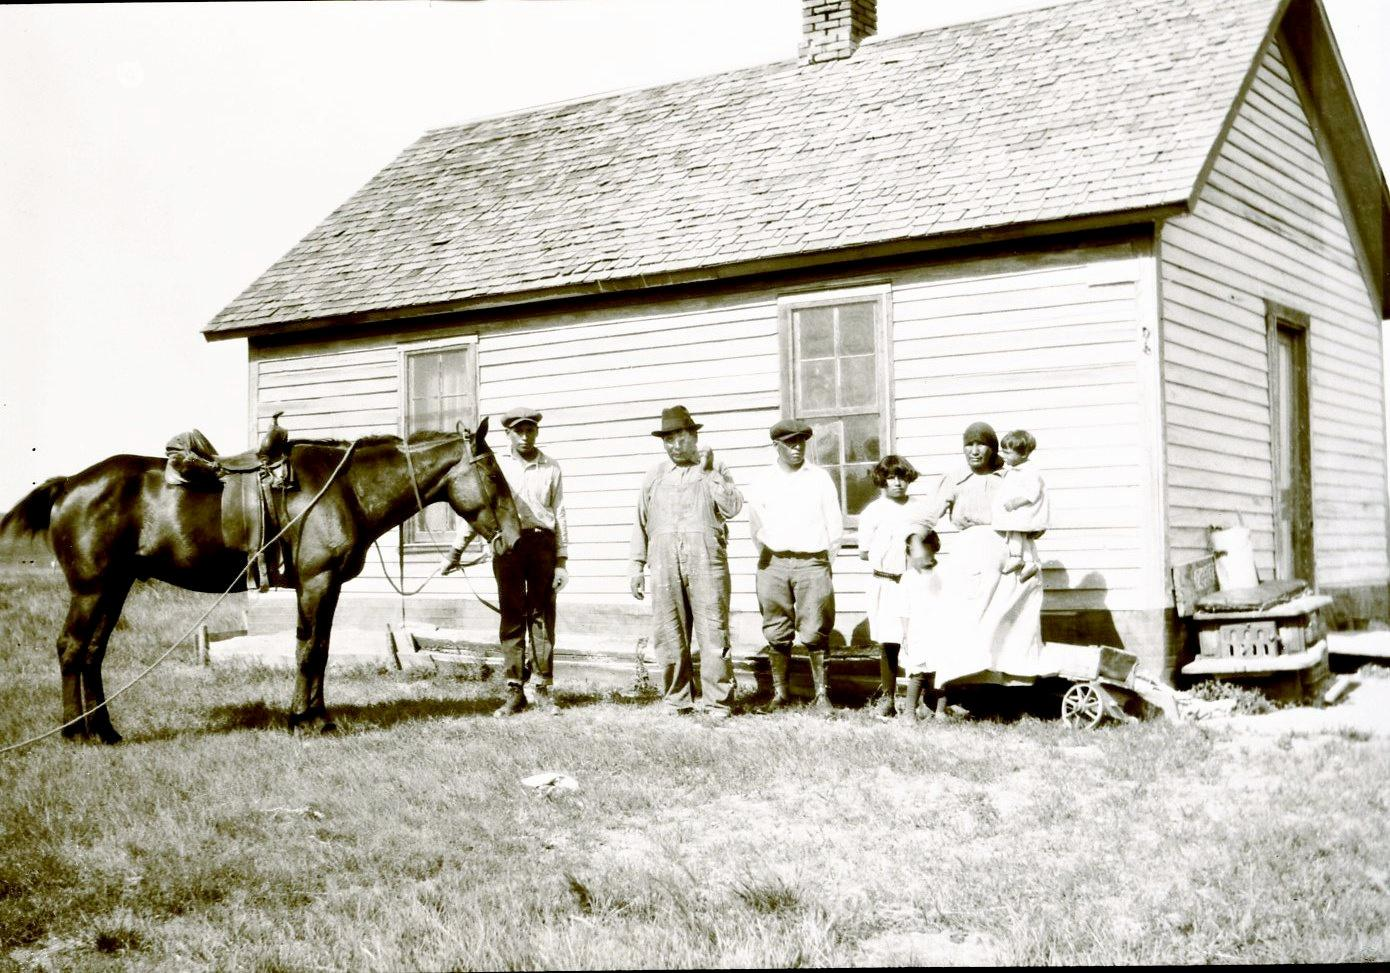 Russell Harrison, Family, Horse, and House